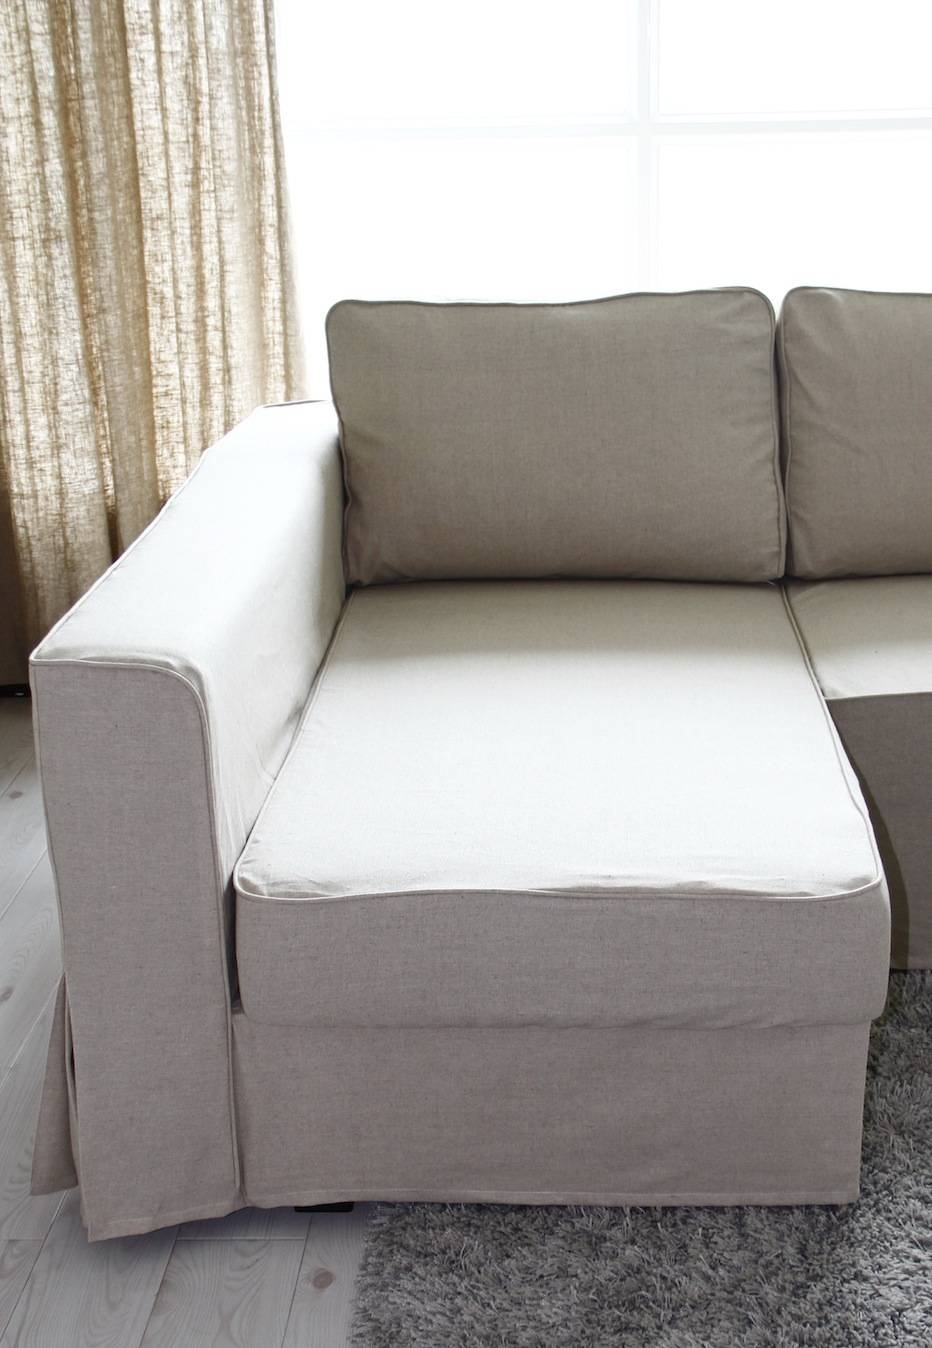 Furniture & Rug: Slipcovers For Sofas With Cushions Separate inside Armless Slipcovers (Image 4 of 15)